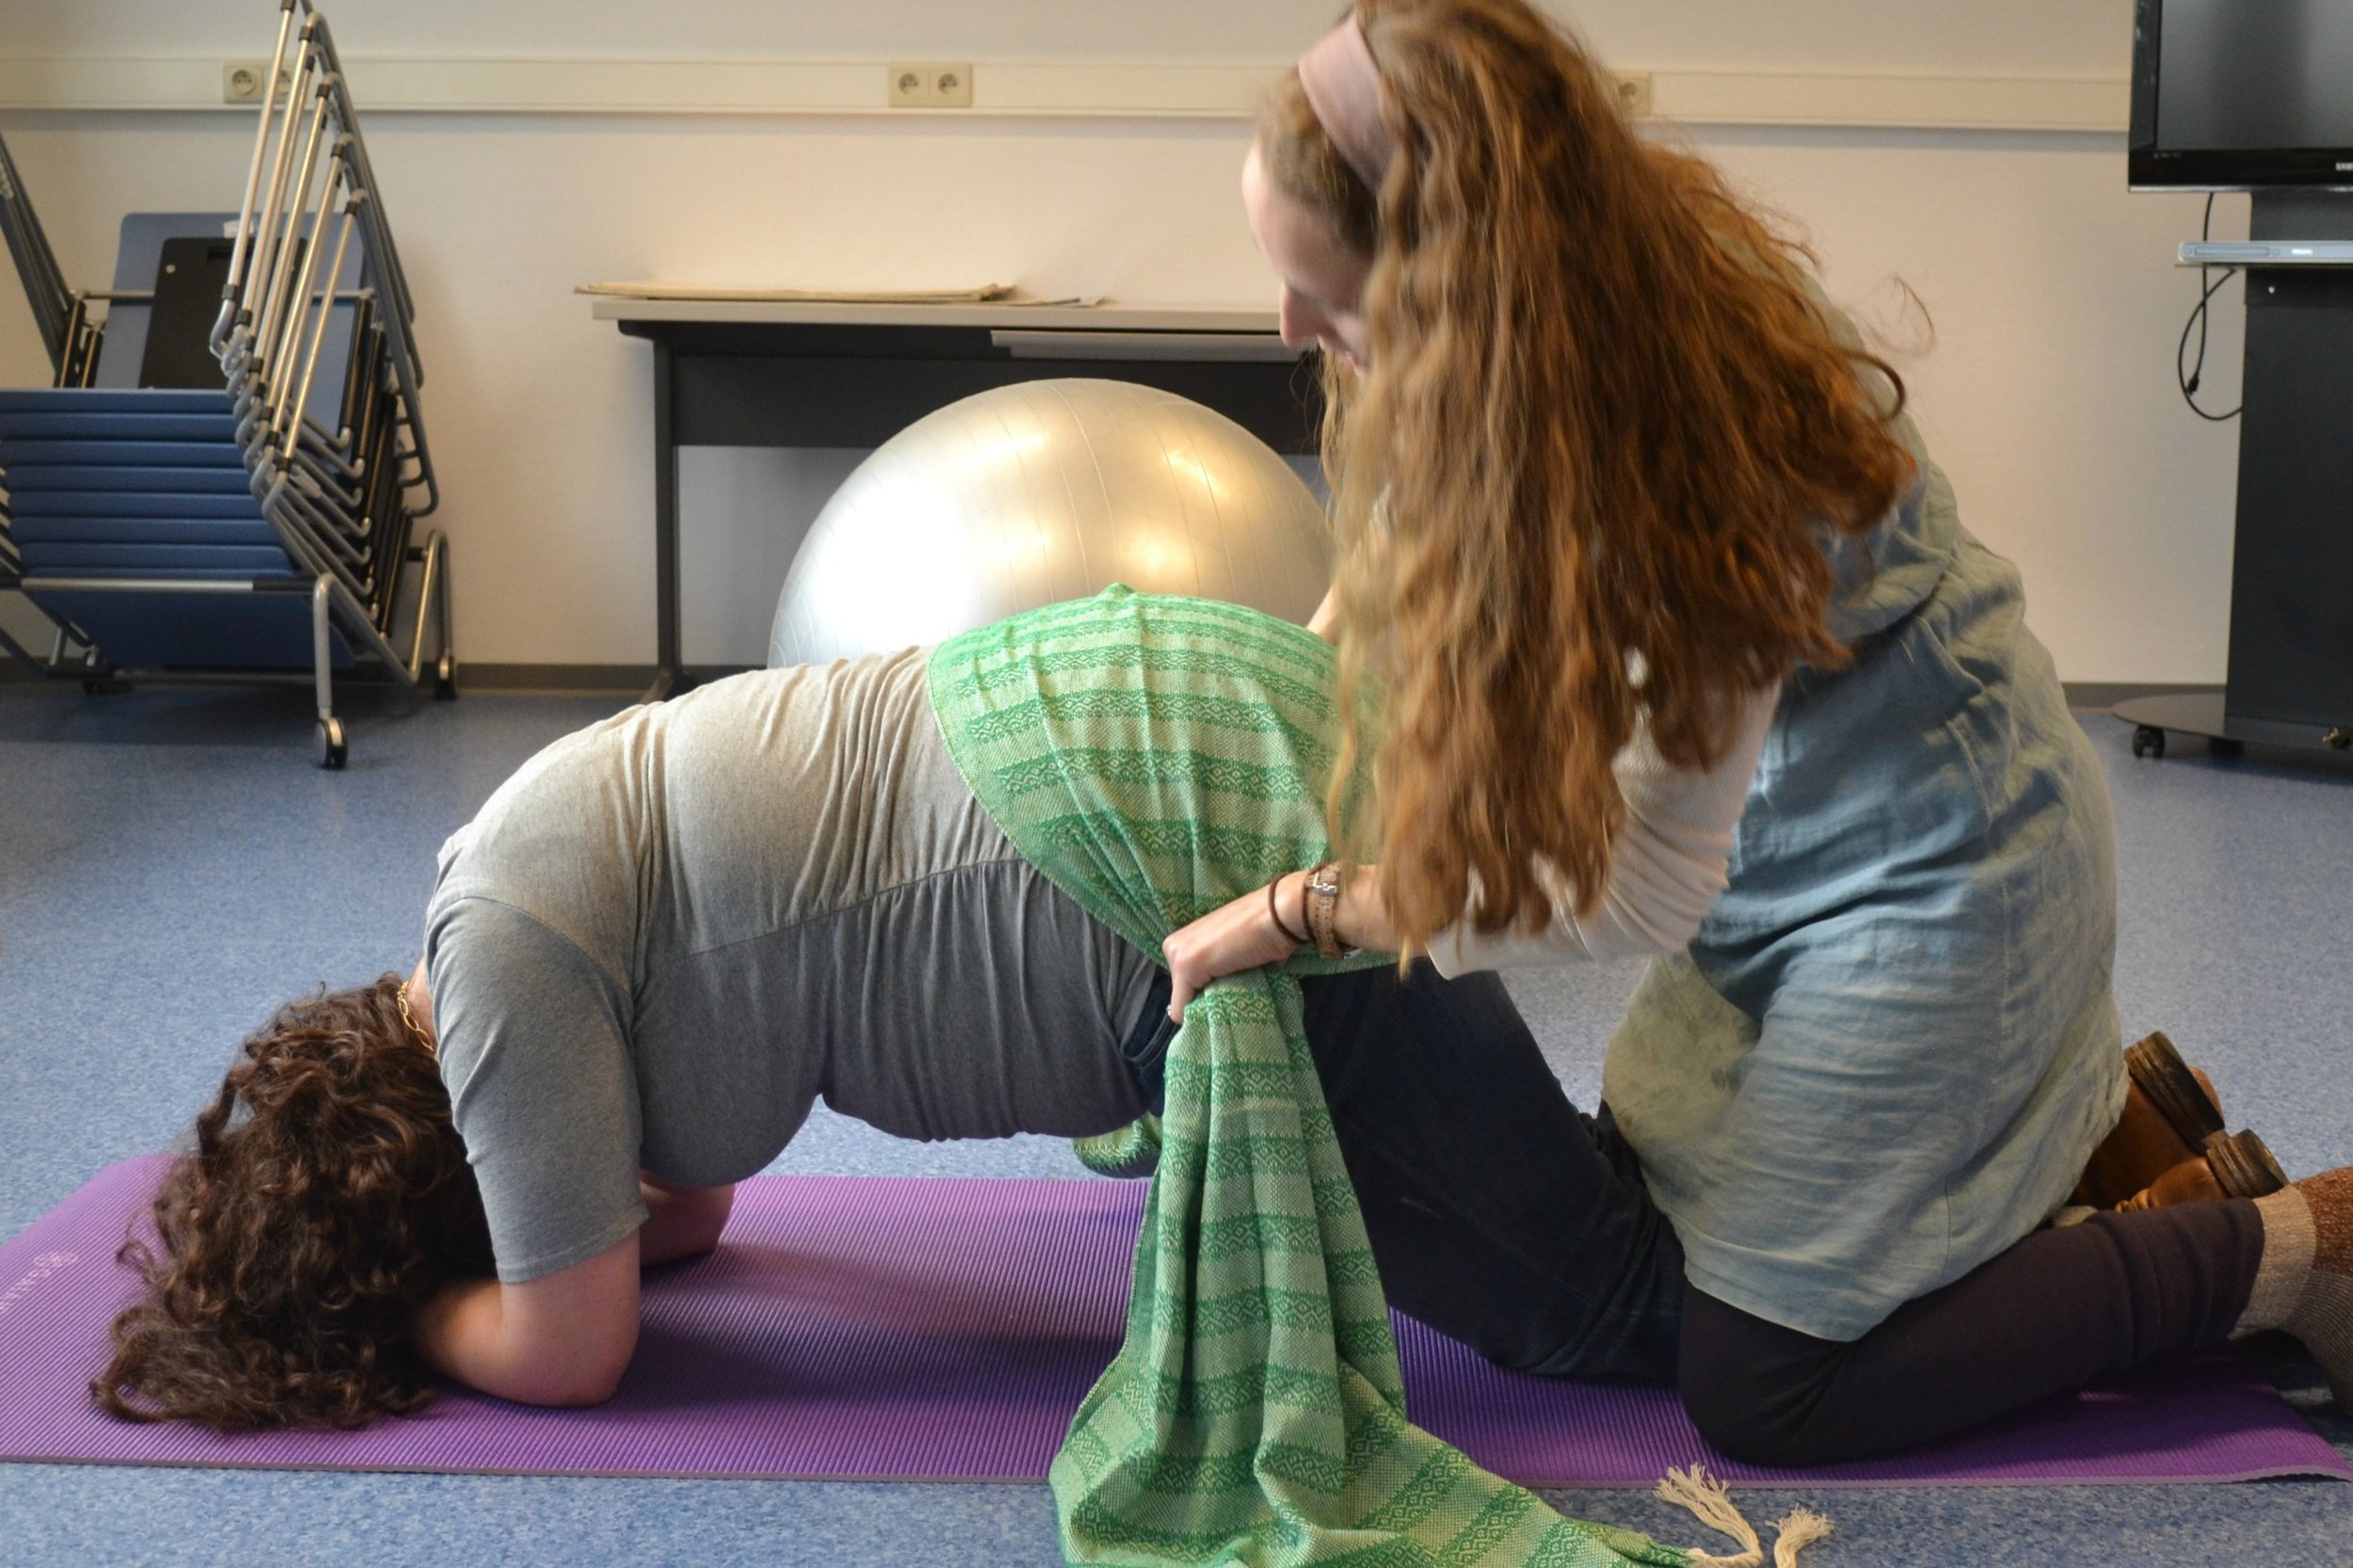 The hip sift. Drape the rebozo over the butt and gather at the hips. Shake quickly. This helps loosen the mother up and encourages her to relax. In birthing class, this bring a lot of laughs but moms really enjoy is.